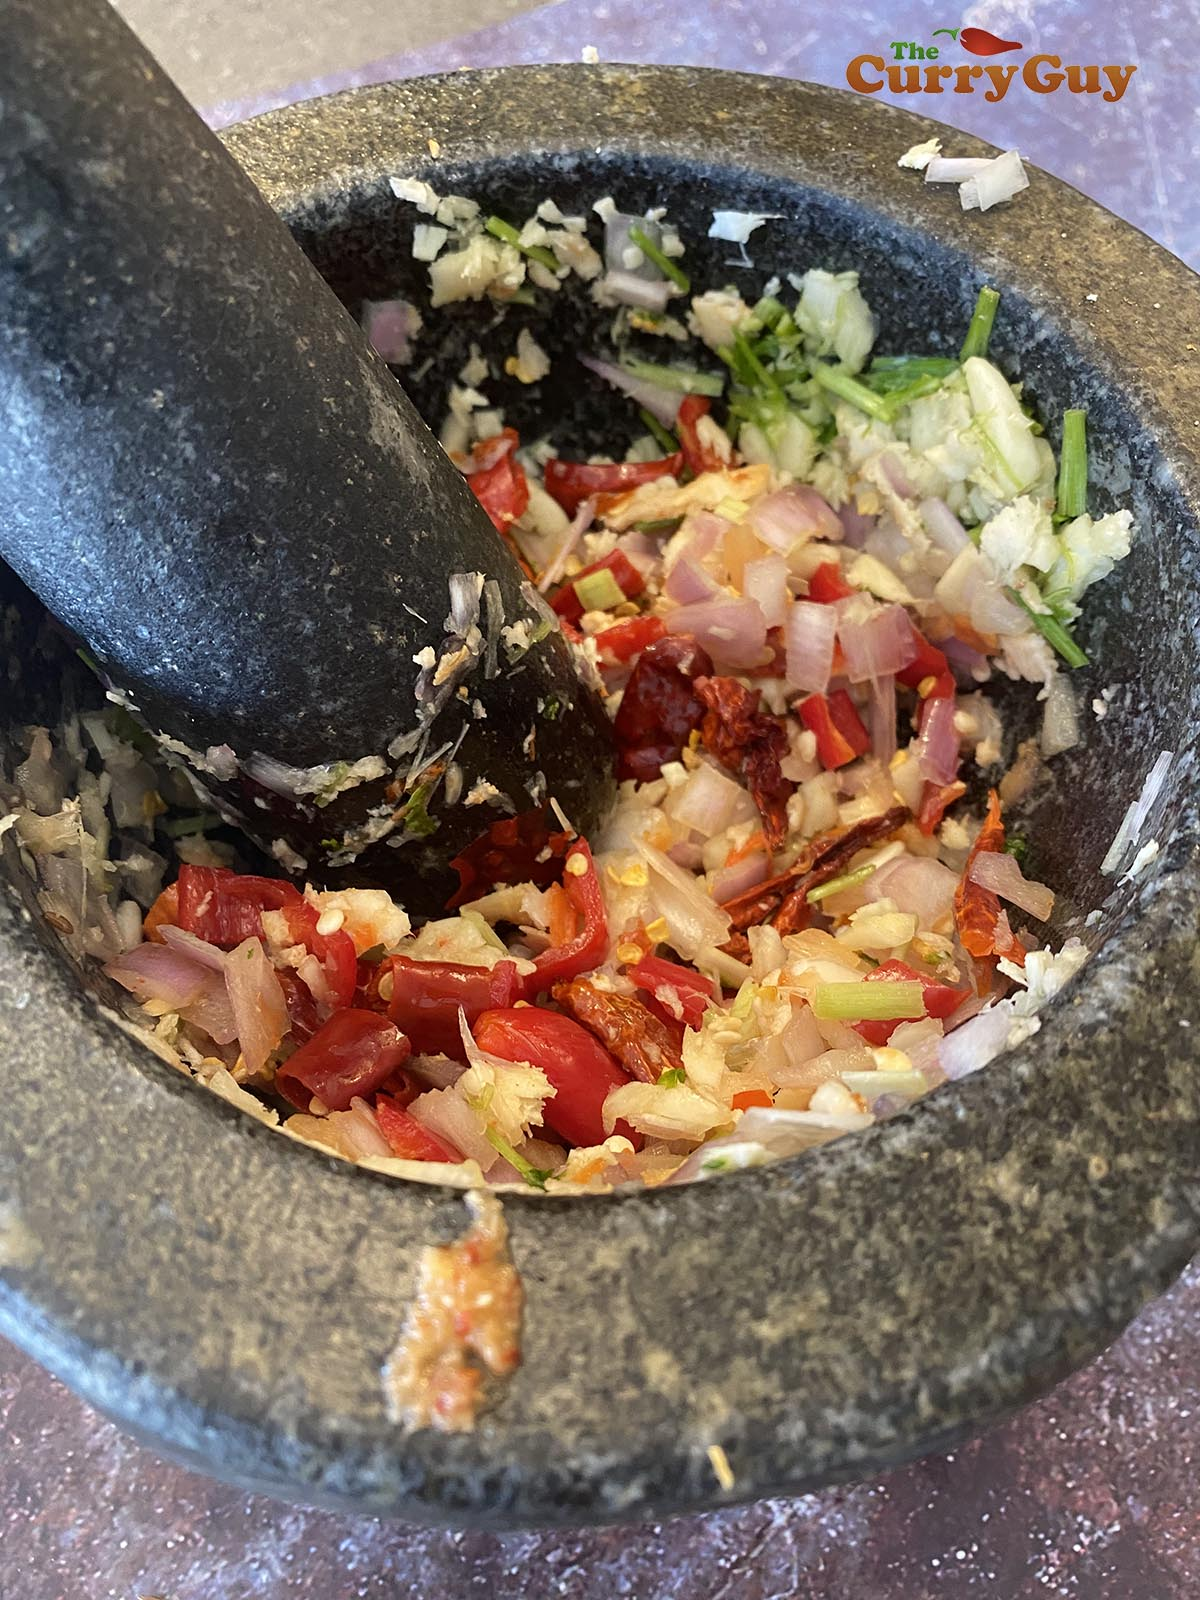 Pounding curry paste ingredients